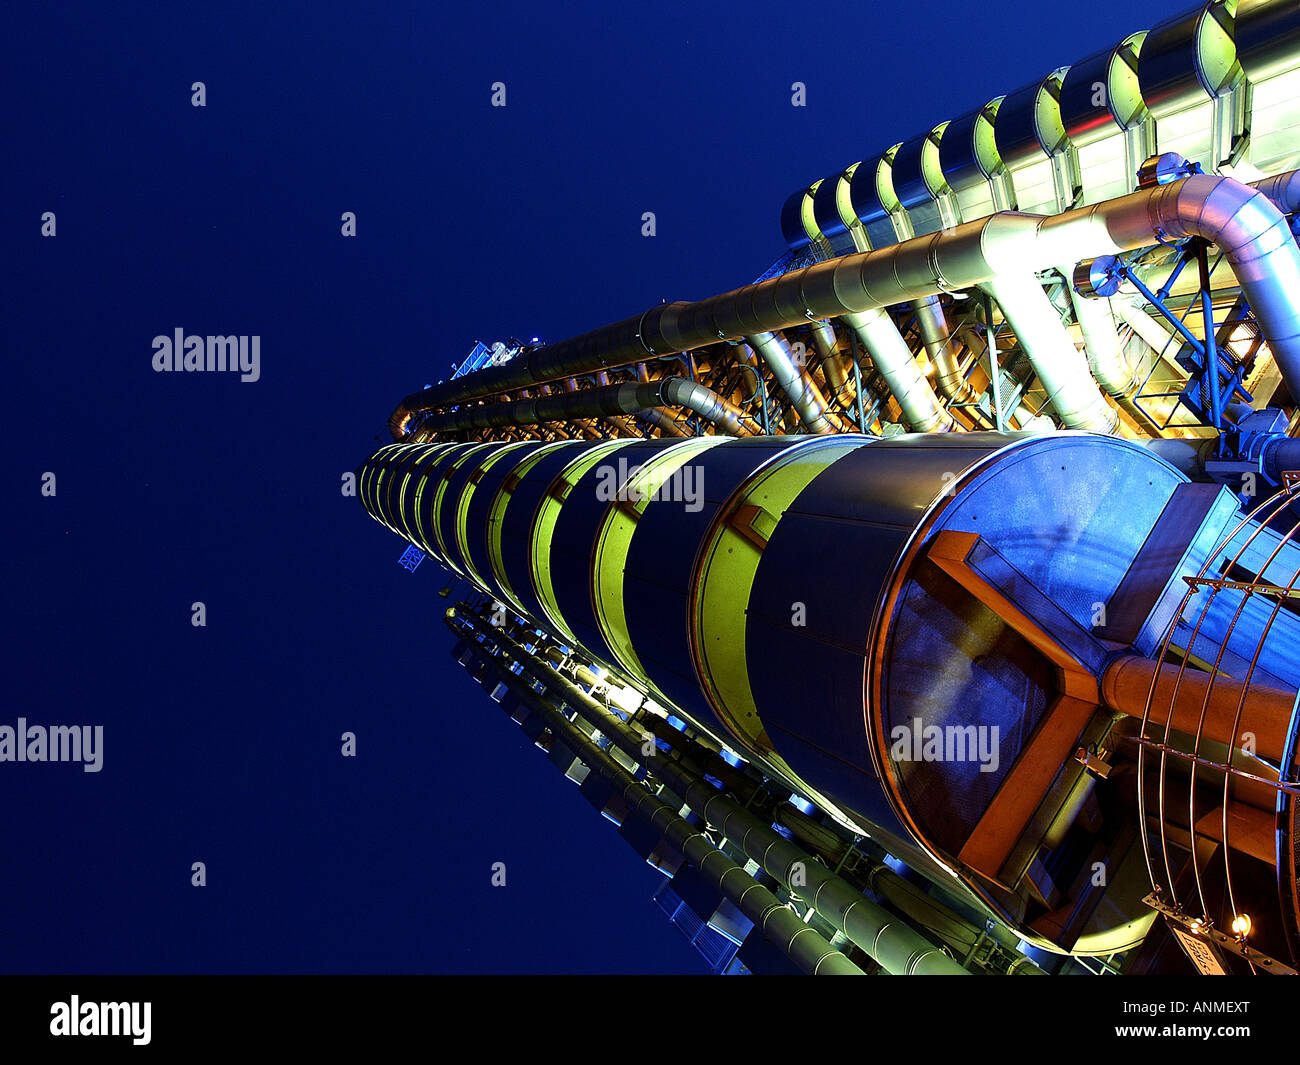 Ground level dramatic shot of Lloyds of London building at night with vivid colours - Stock Image